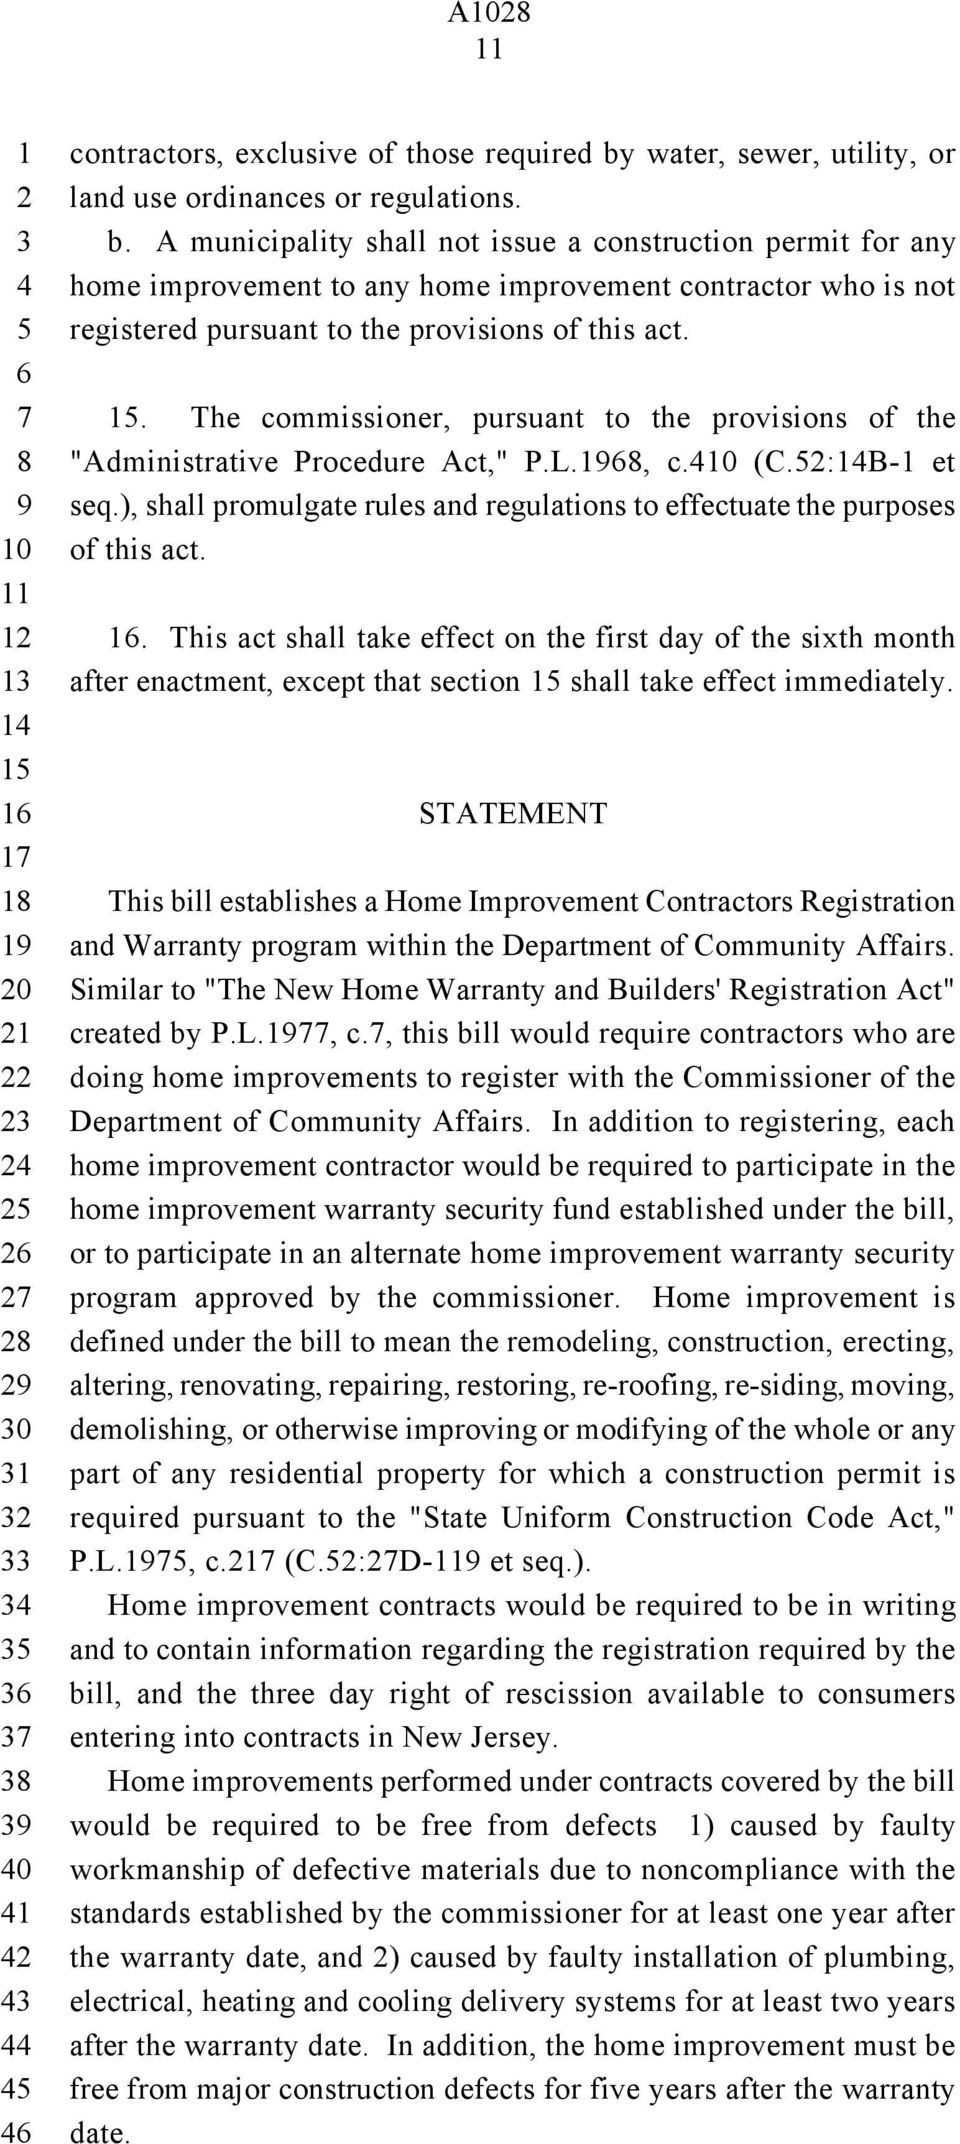 A municipality shall not issue a construction permit for any home improvement to any home improvement contractor who is not registered pursuant to the provisions of this act.